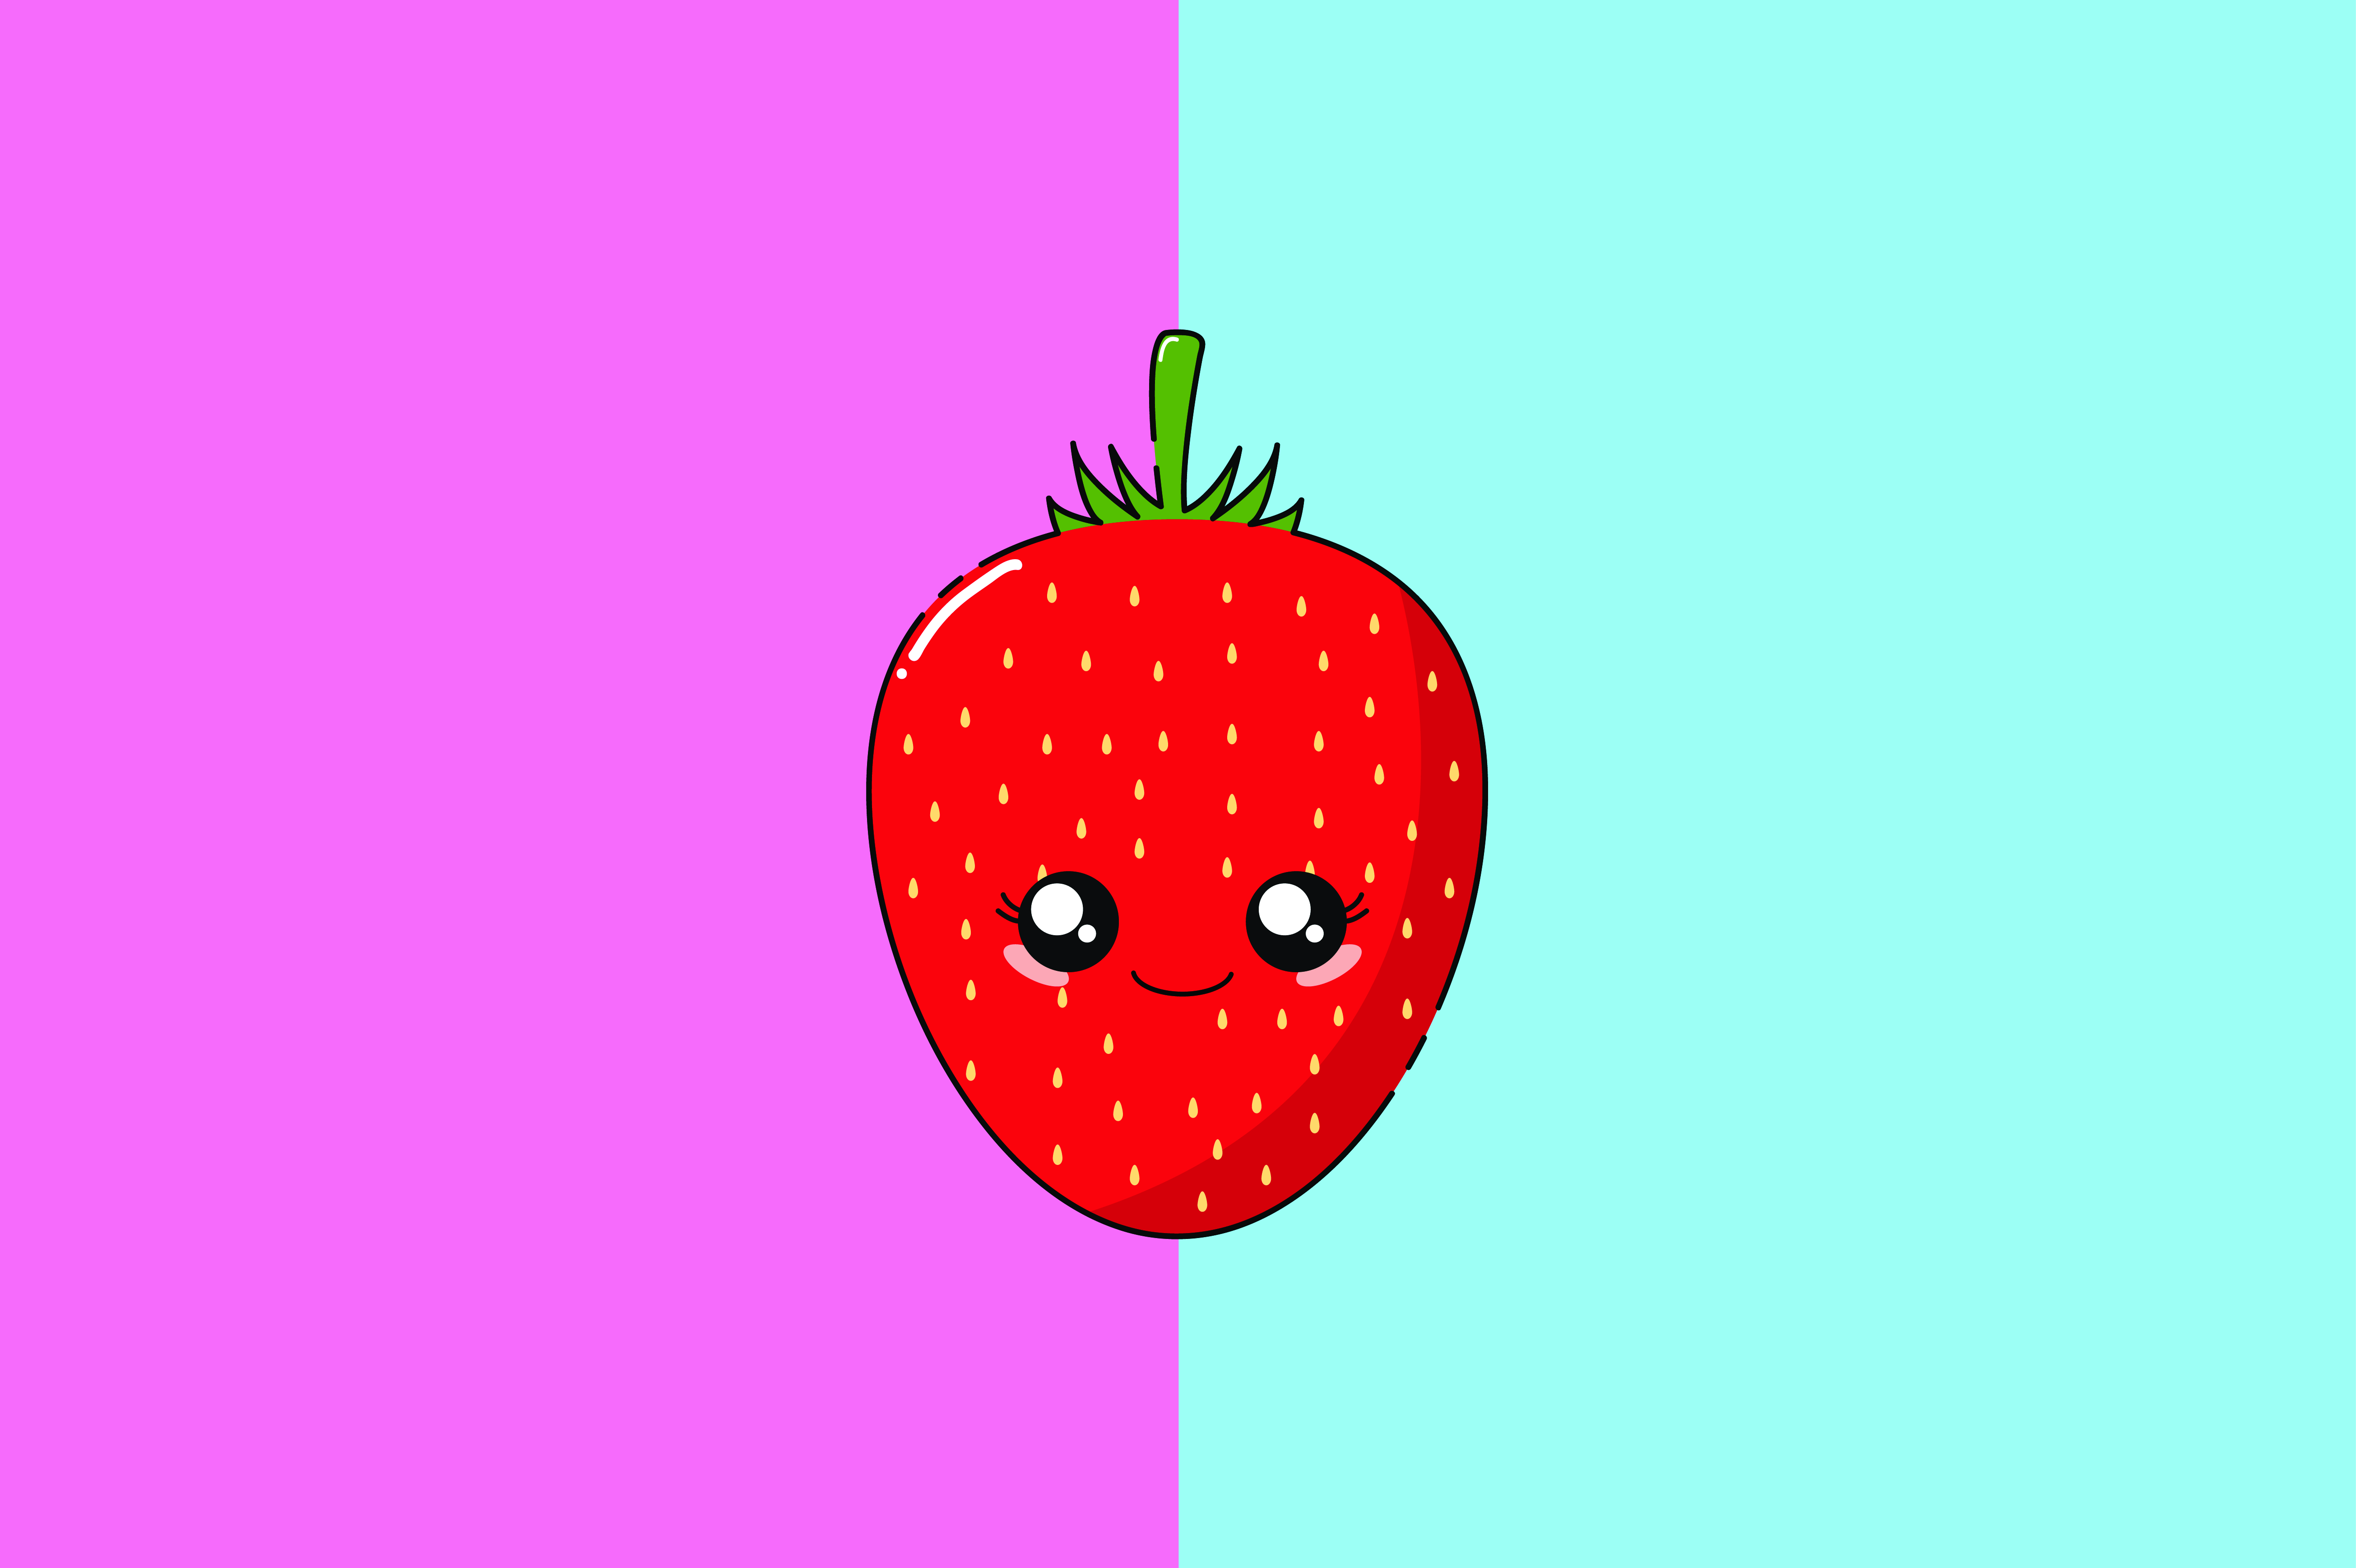 Download Free Strawberry Kawaii Cute Illustration Graphic By Purplebubble for Cricut Explore, Silhouette and other cutting machines.